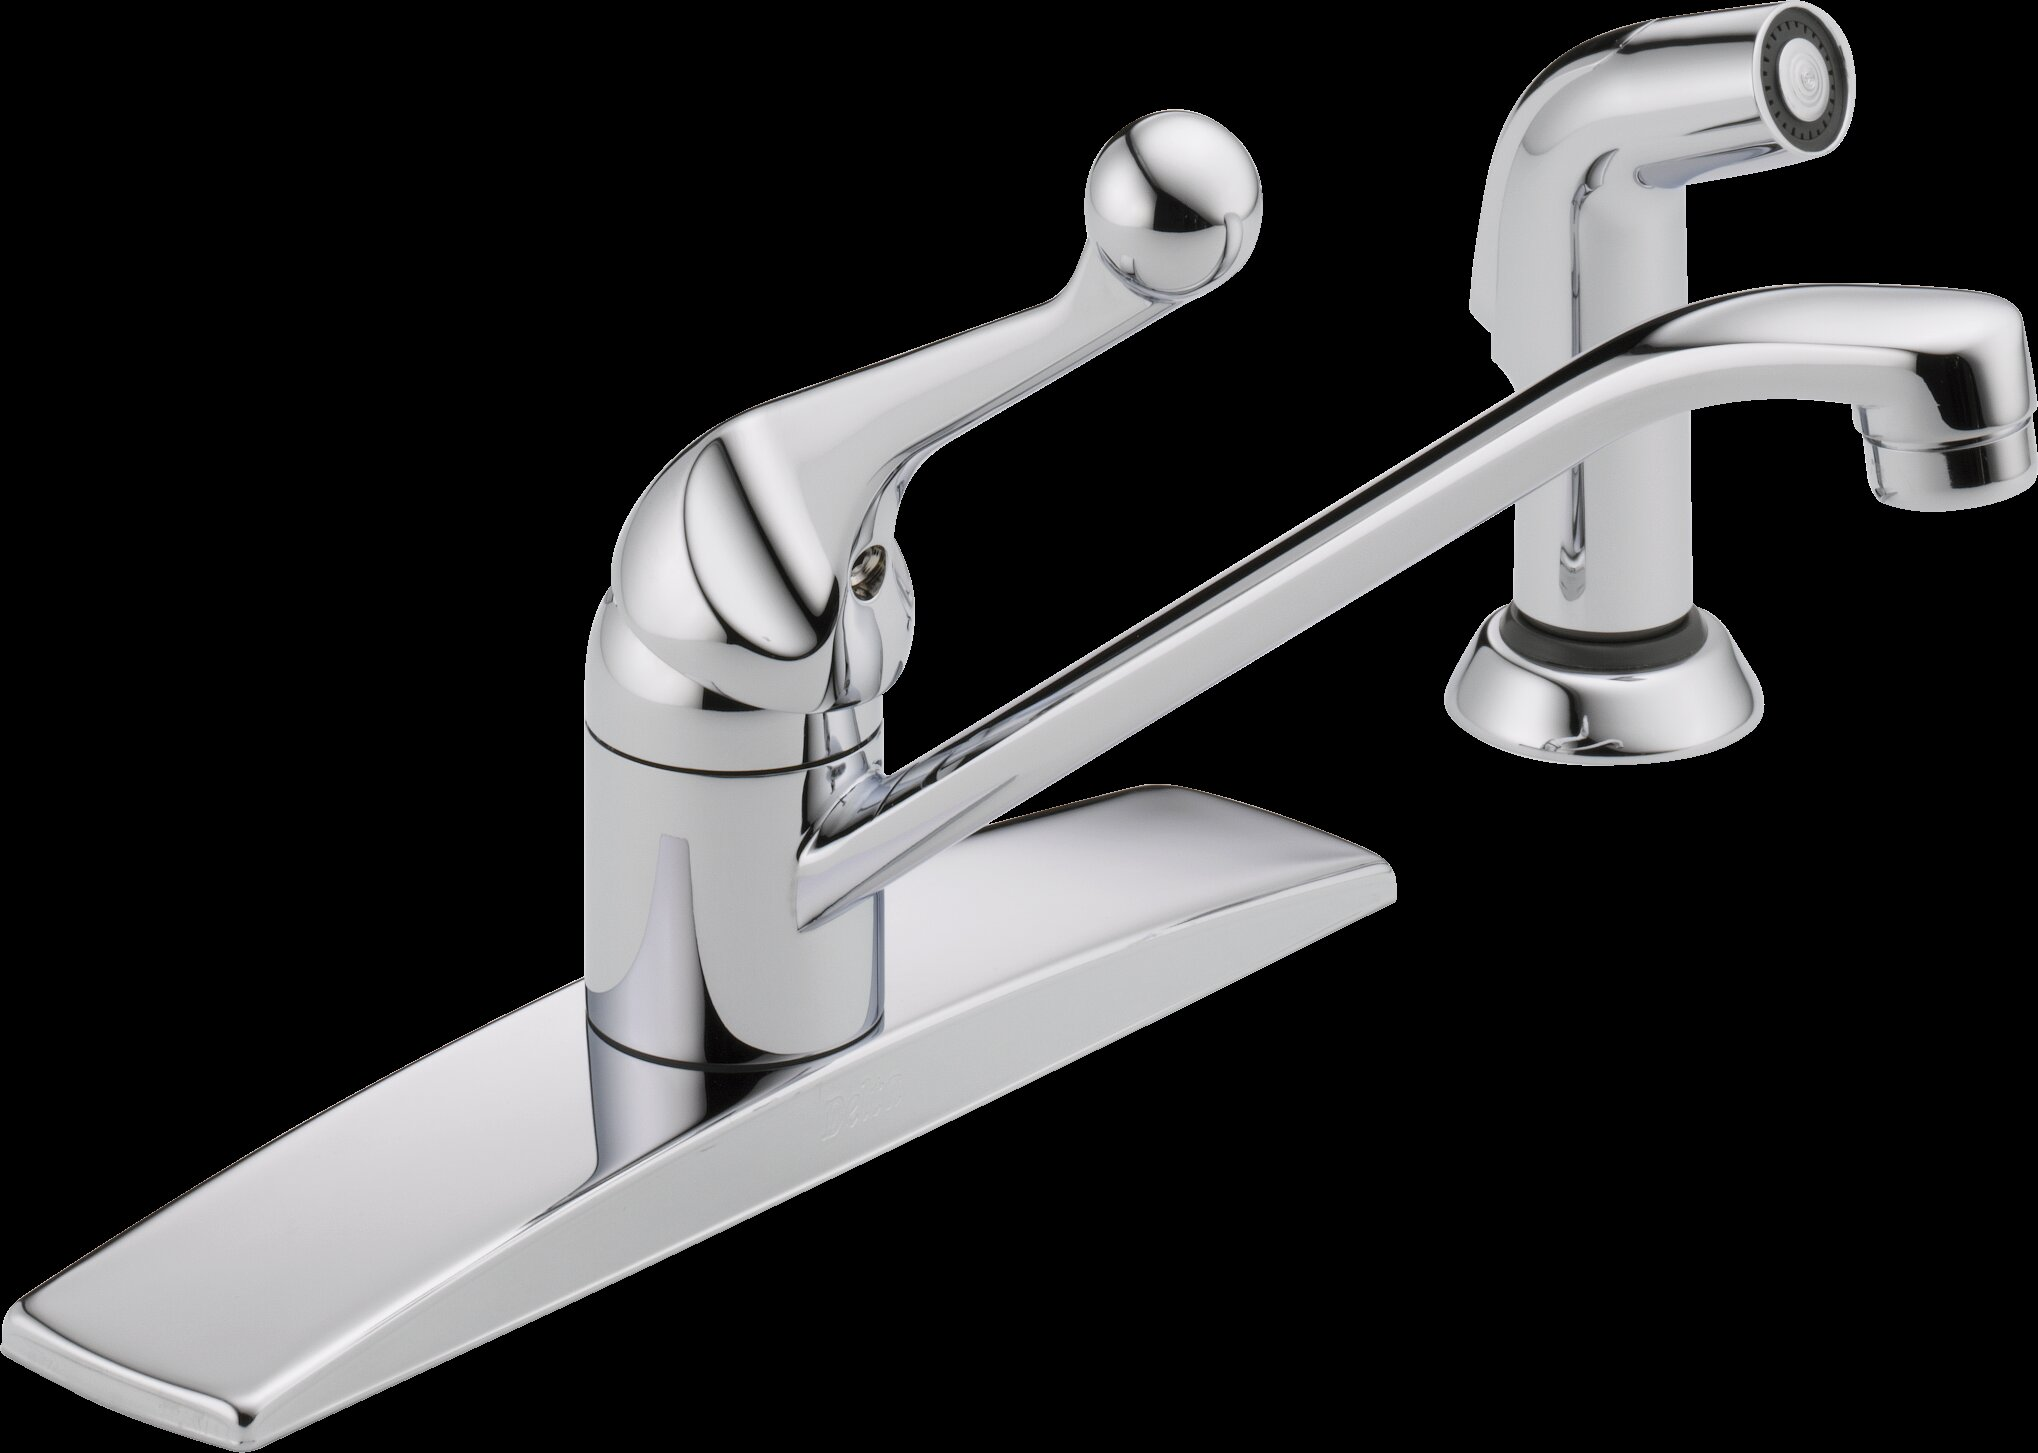 Delta Single Handle Kitchen Faucet with Side Spray | Wayfair